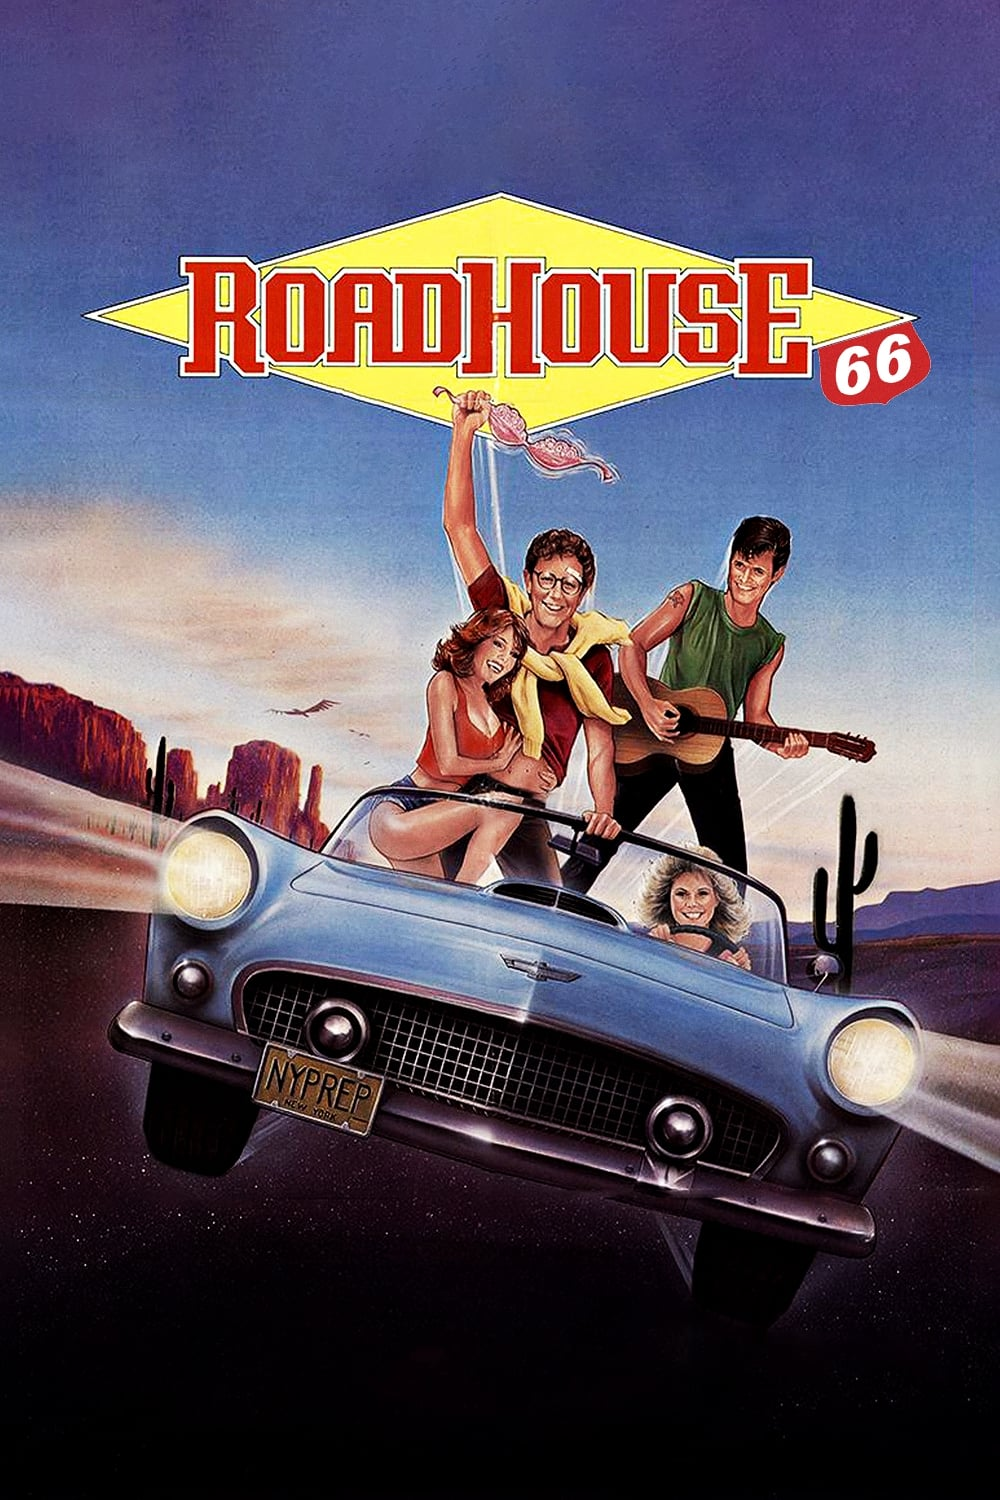 Image Roadhouse 66